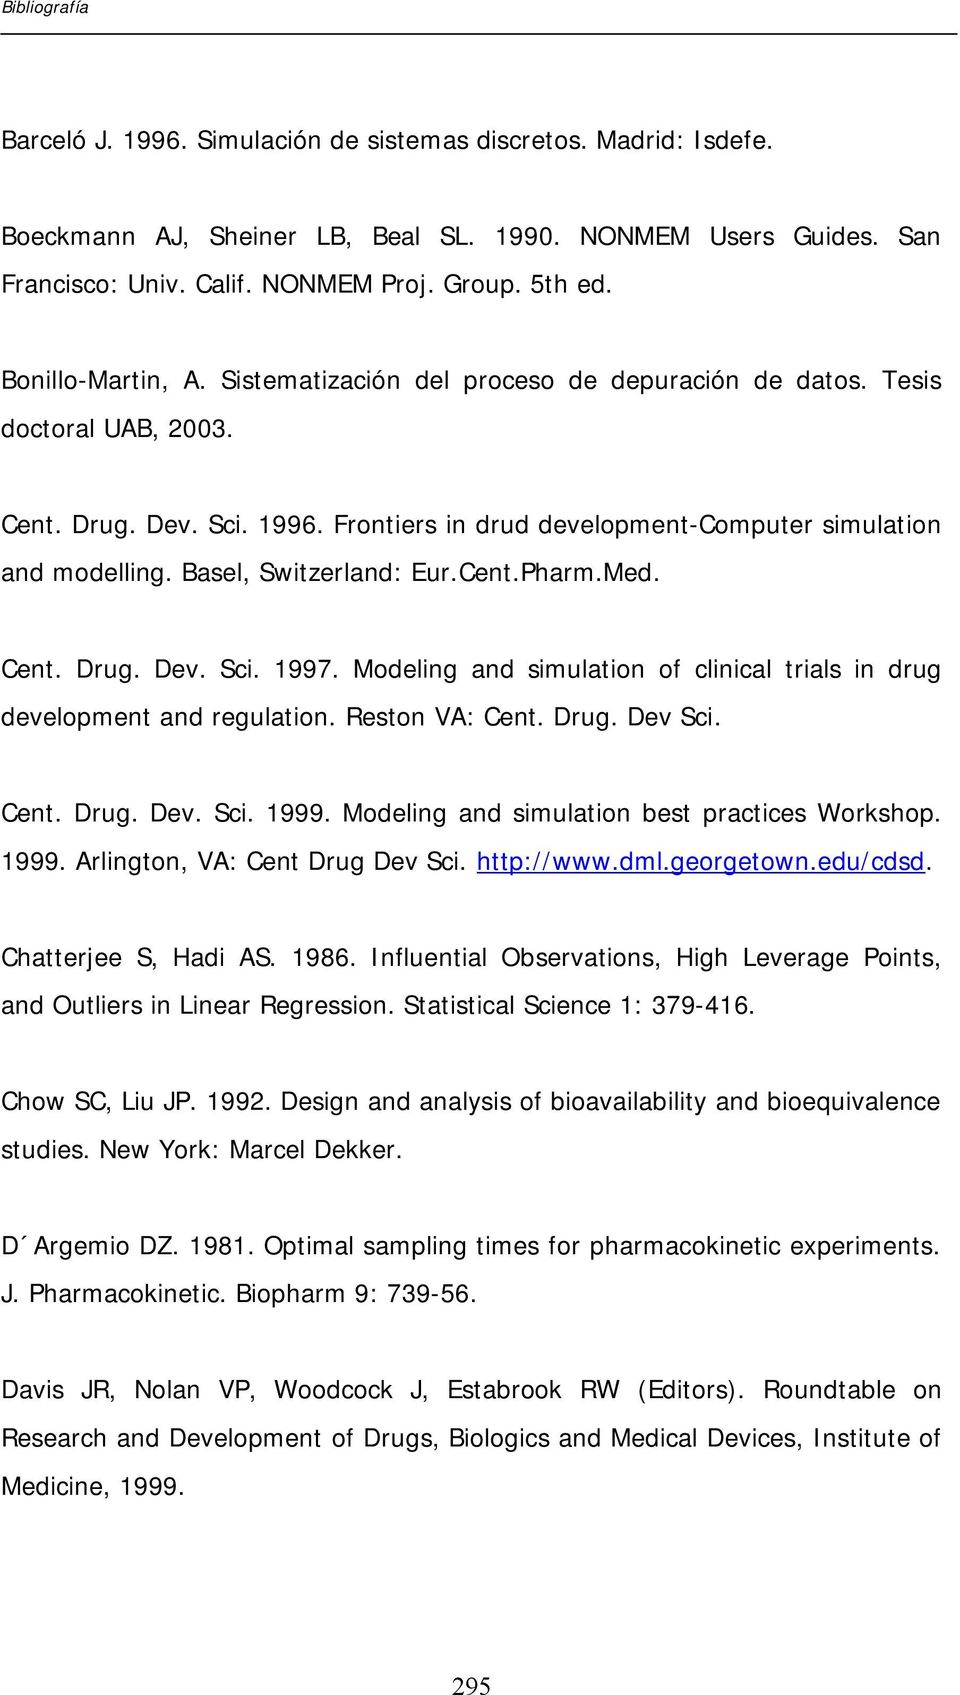 Basel, Switzerland: Eur.Cent.Pharm.Med. Cent. Drug. Dev. Sci. 1997. Modeling and simulation of clinical trials in drug development and regulation. Reston VA: Cent. Drug. Dev Sci. Cent. Drug. Dev. Sci. 1999.